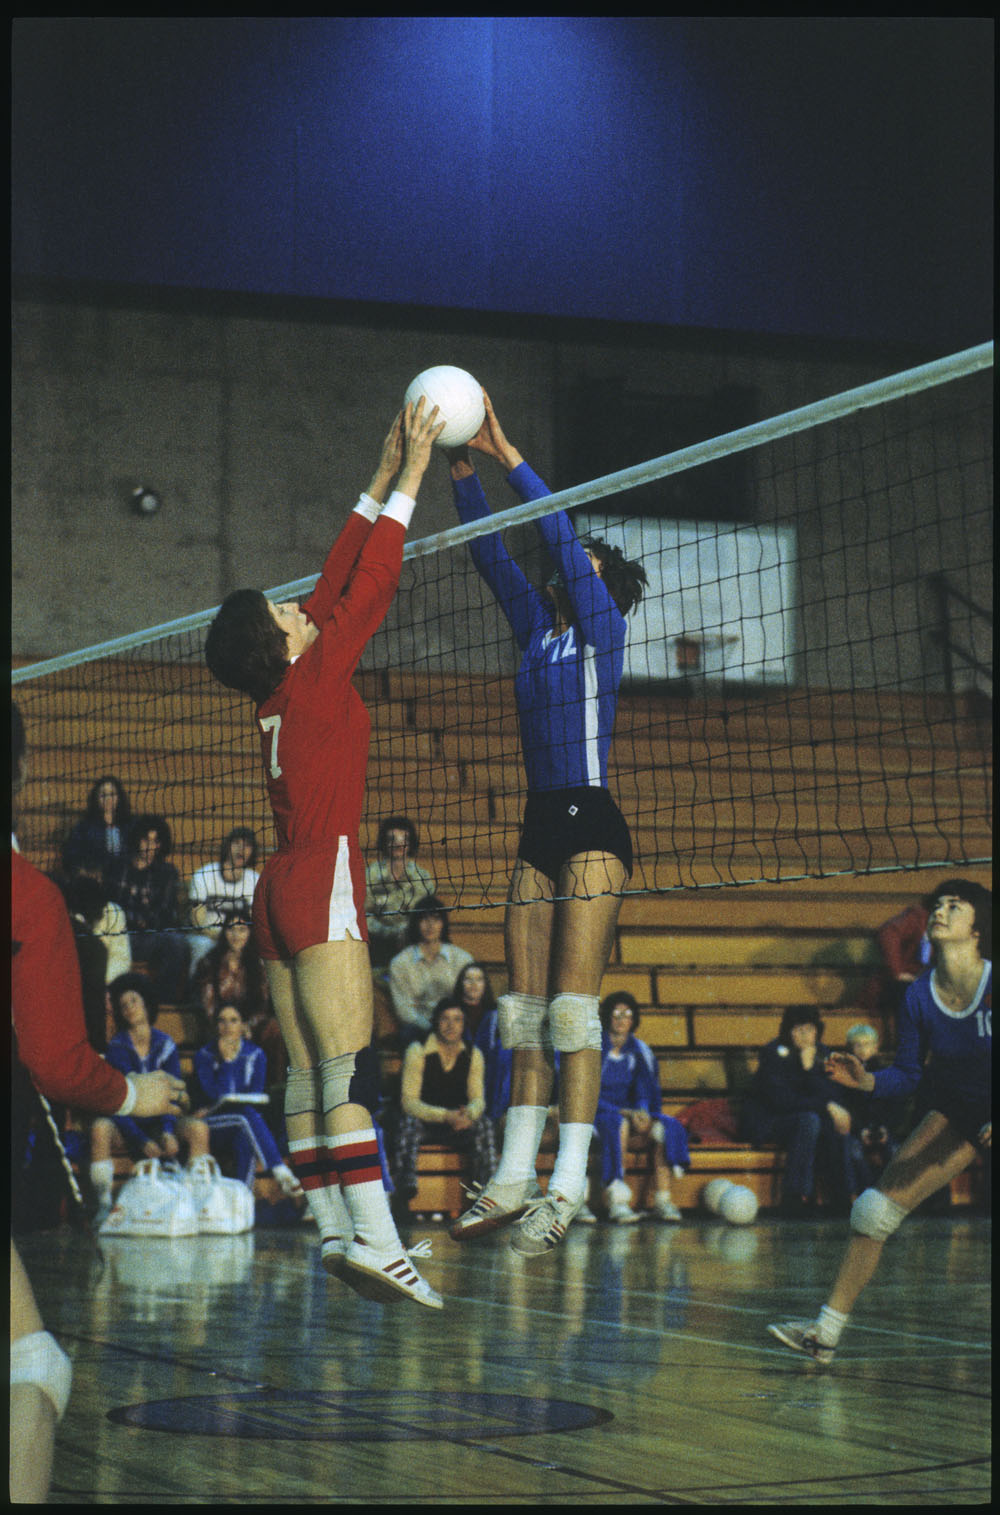 Two opposing female volleyball players jump for the ball above the net during the Third Canada Winter Games, at Lethbridge, Alberta